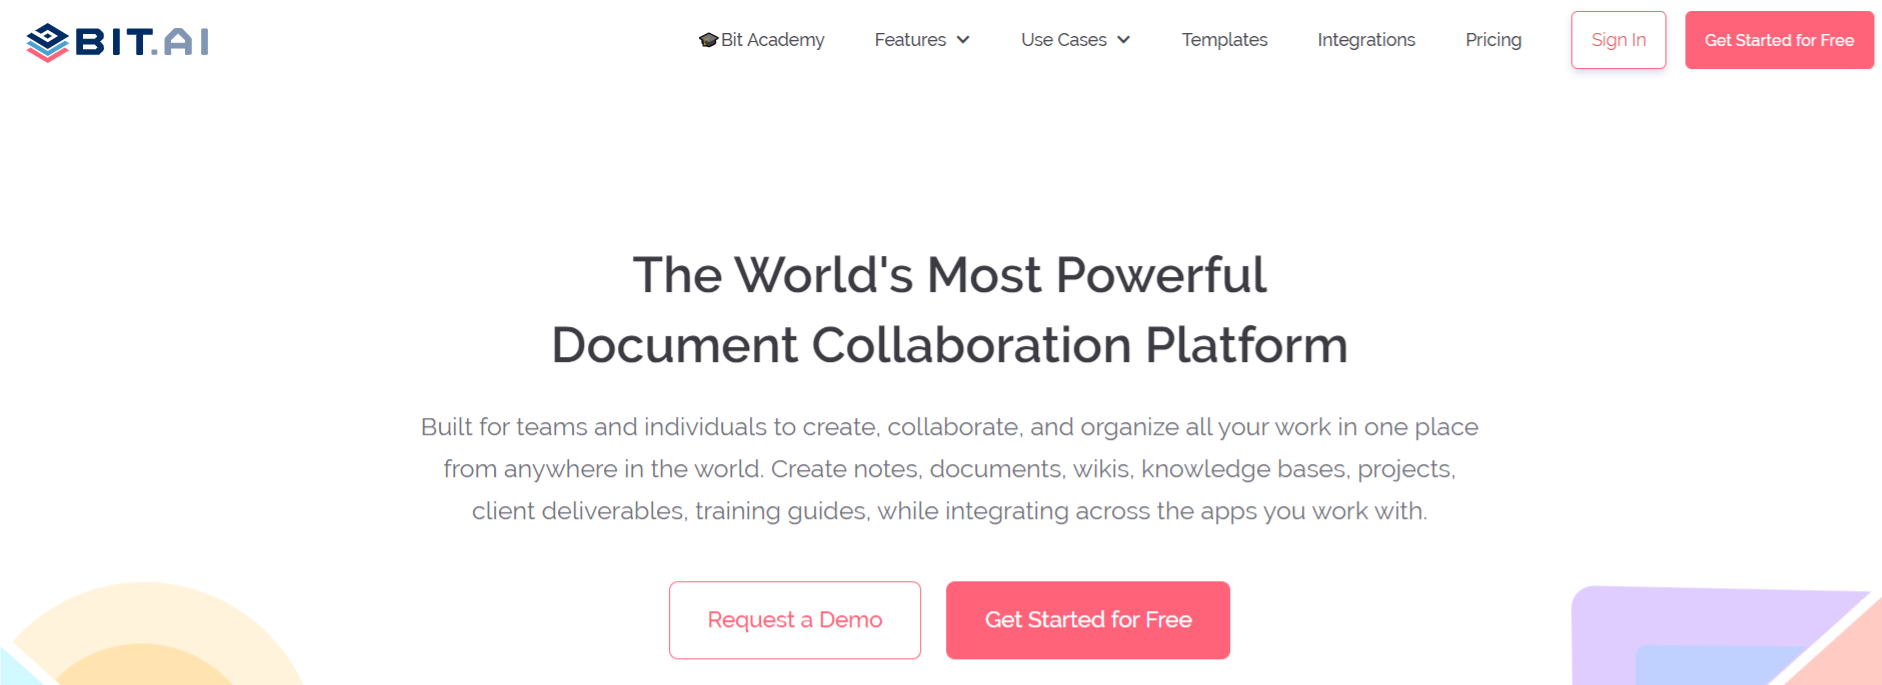 Bit.ai: Content curation tool